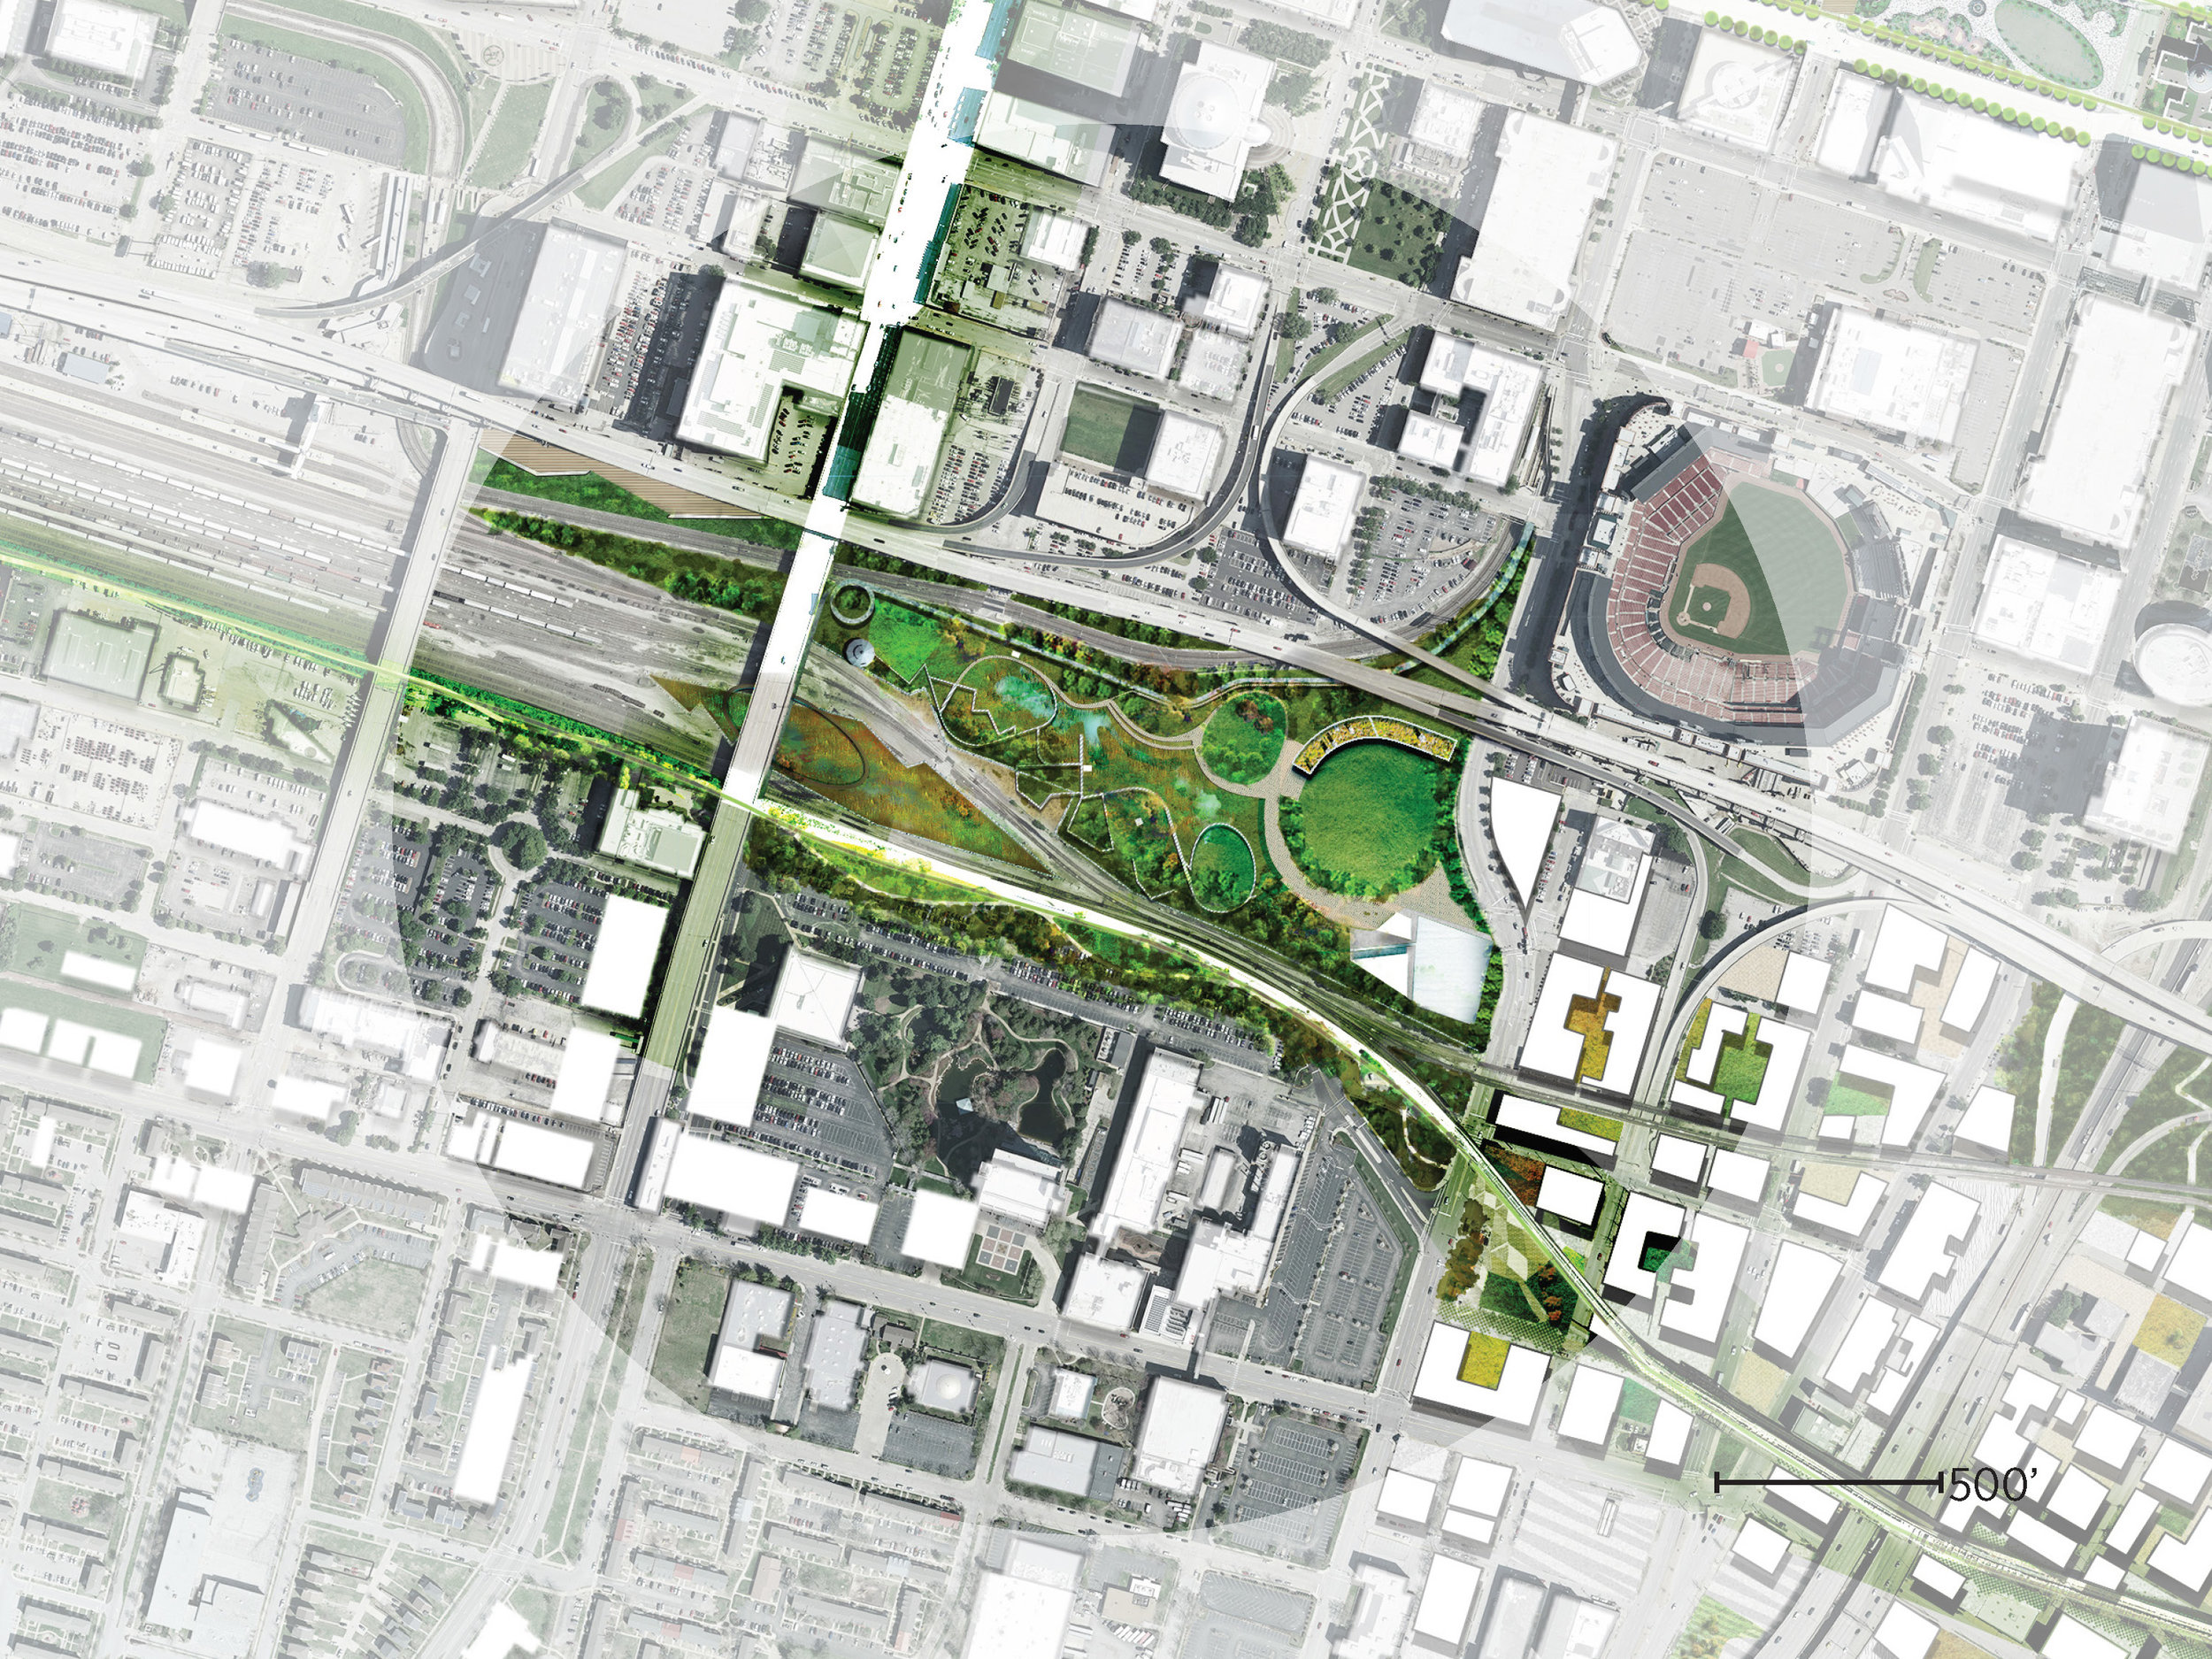 Plan at Wetland Park and stormwater filtration zone